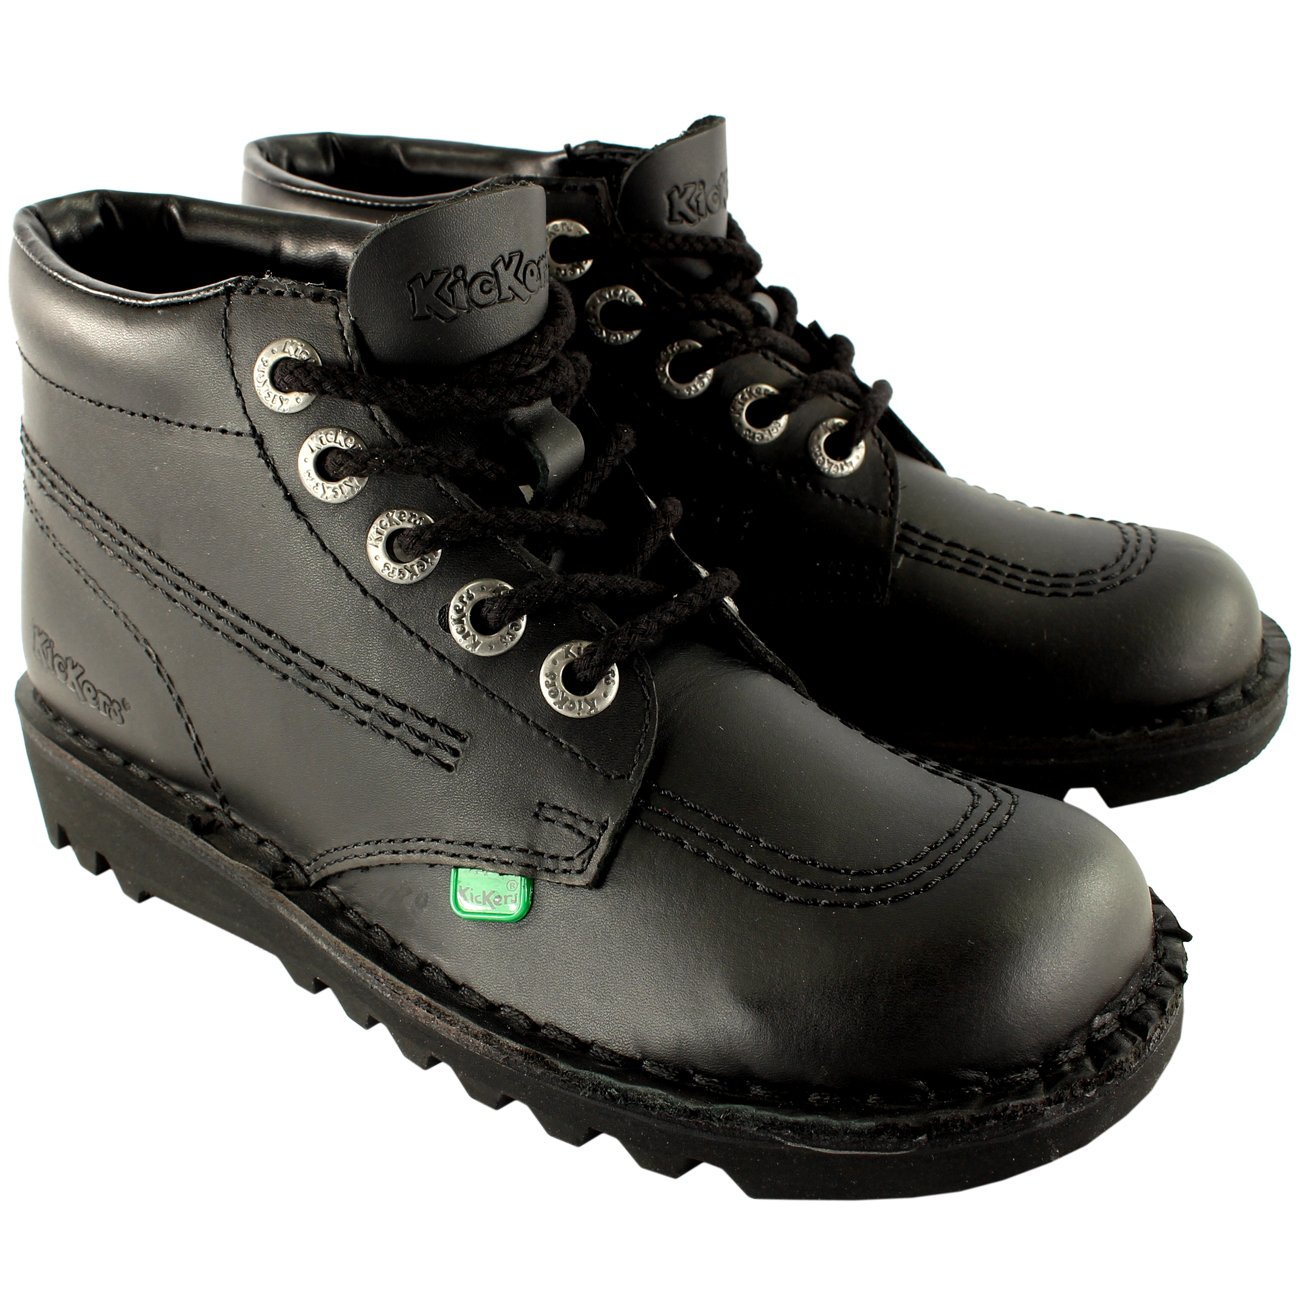 Kickers Mens Kick Hi Leather Classic Oxfords Office Work Boots Shoes - Black/Black - 8.5